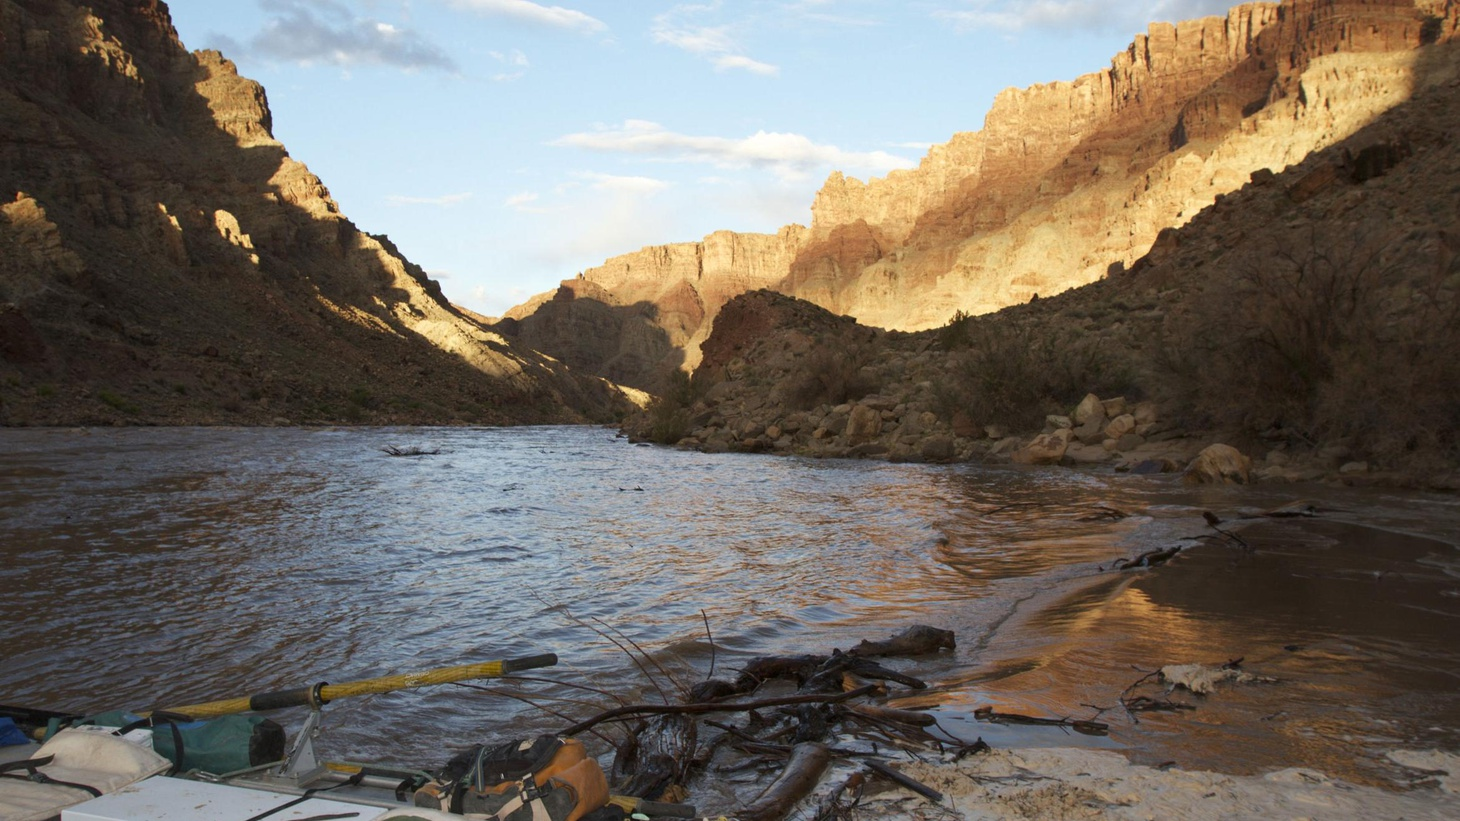 Alex Chadwick's story of two men whose troubles and tragedies find respite in the raging rapids of Cataract Canyon.